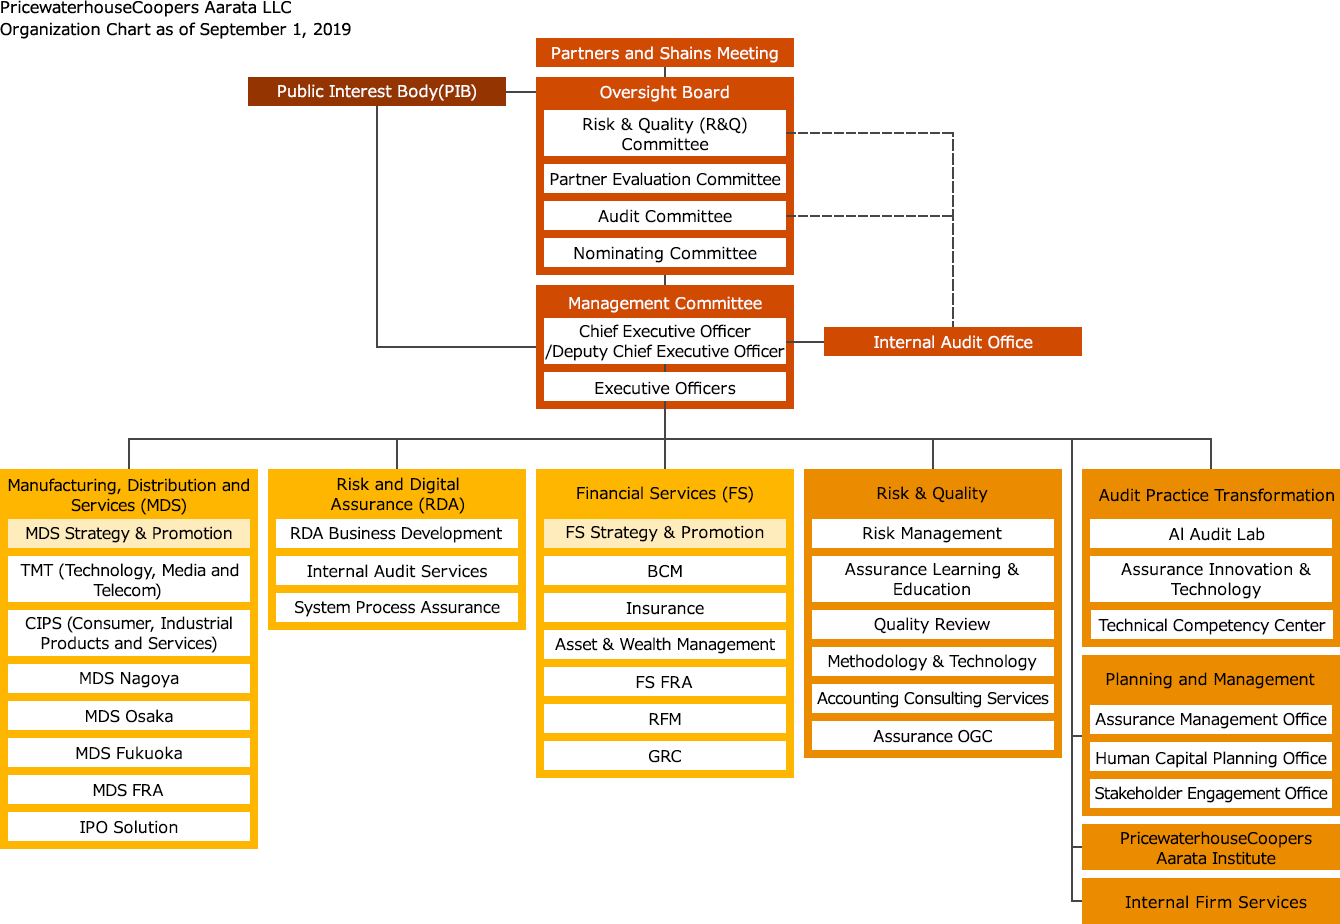 Organizational structure and governance pricewaterhousecoopers organizational structure nvjuhfo Gallery